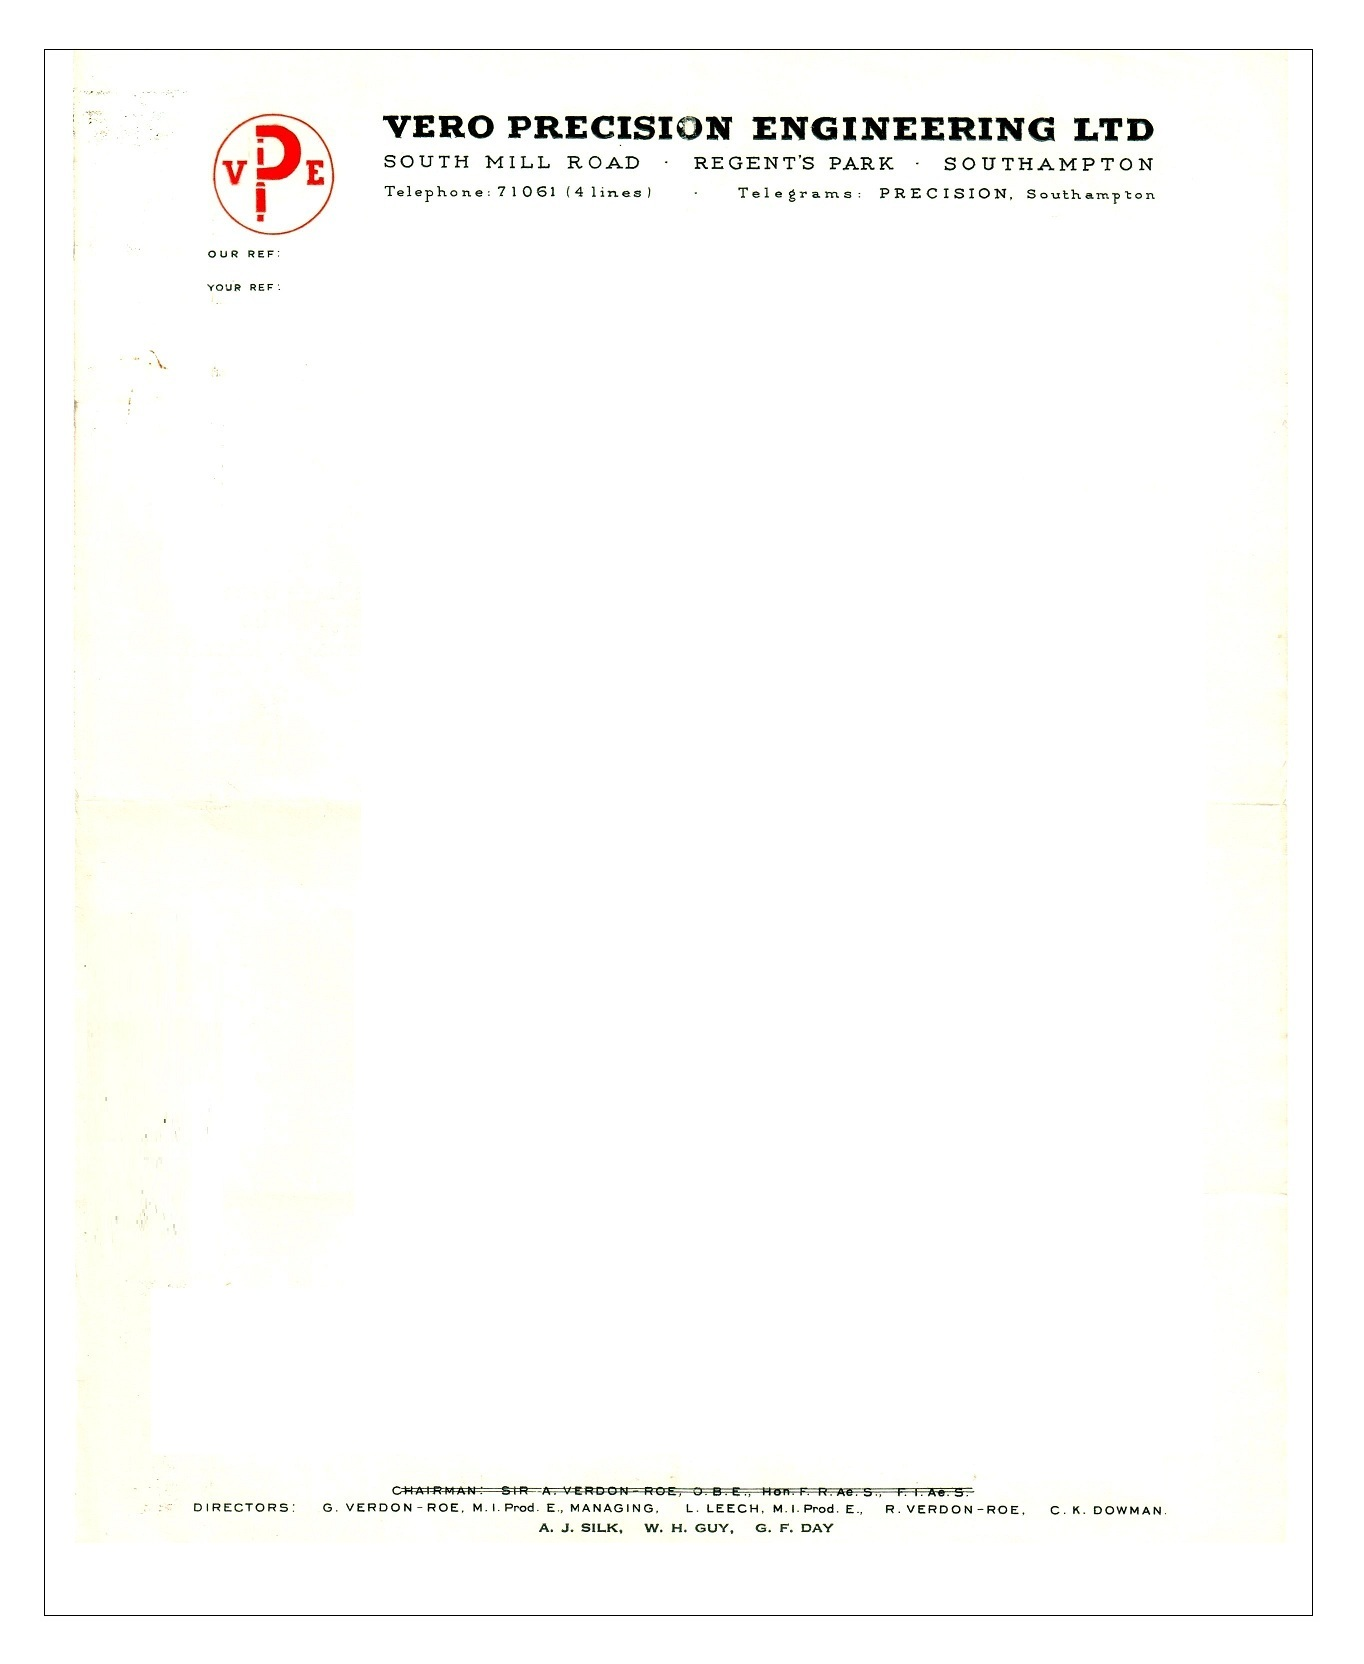 letterhead printing online the mgx copy blog